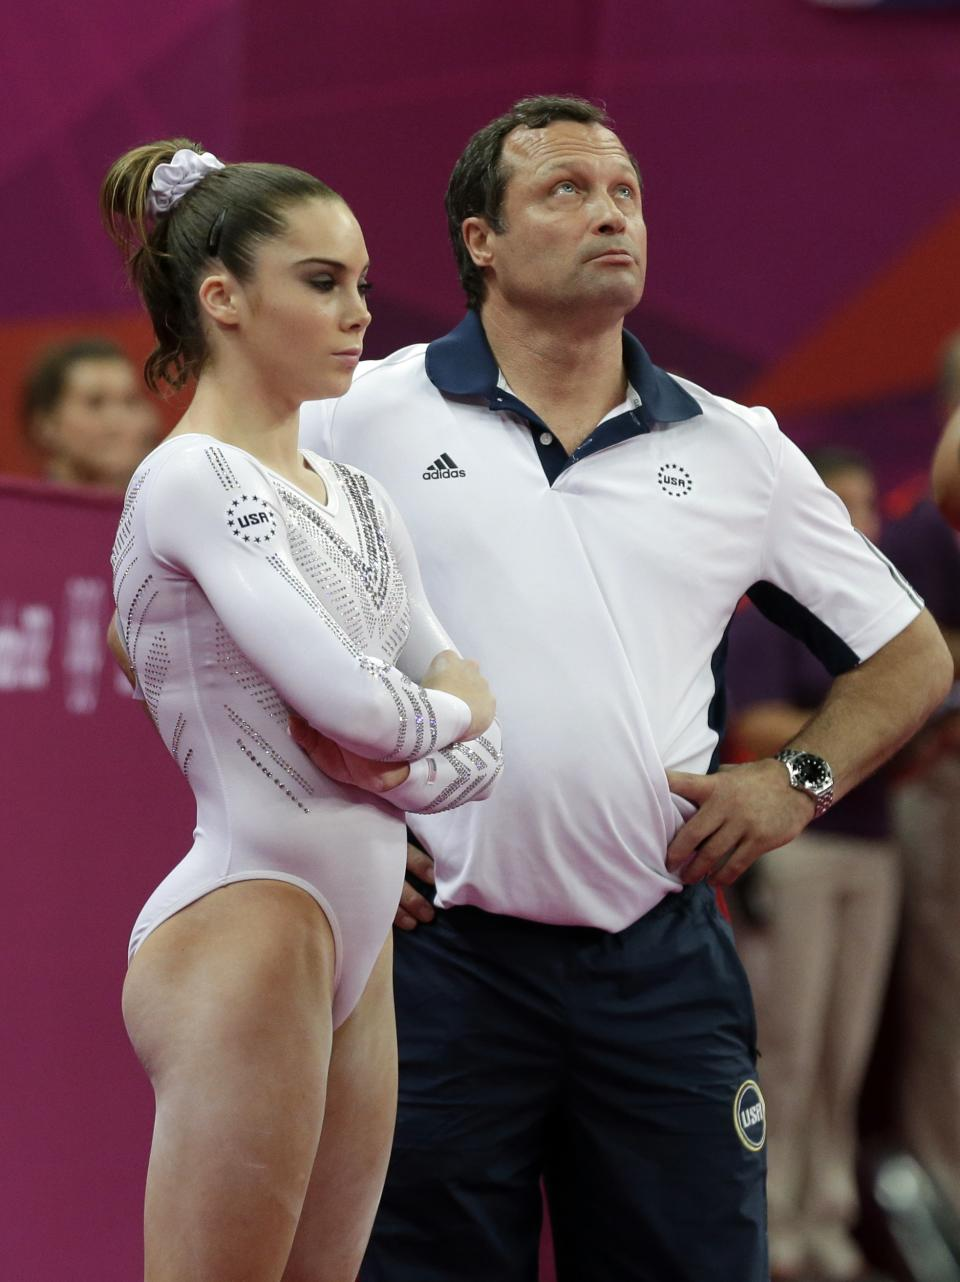 U.S. gymnast McKayla Maroney and her coach wait for the final scores after Romania's gymnast Sandra Raluca Izbasa's performance during the artistic gymnastics women's vault finals at the 2012 Summer Olympics, Sunday, Aug. 5, 2012, in London. (AP Photo/Julie Jacobson)